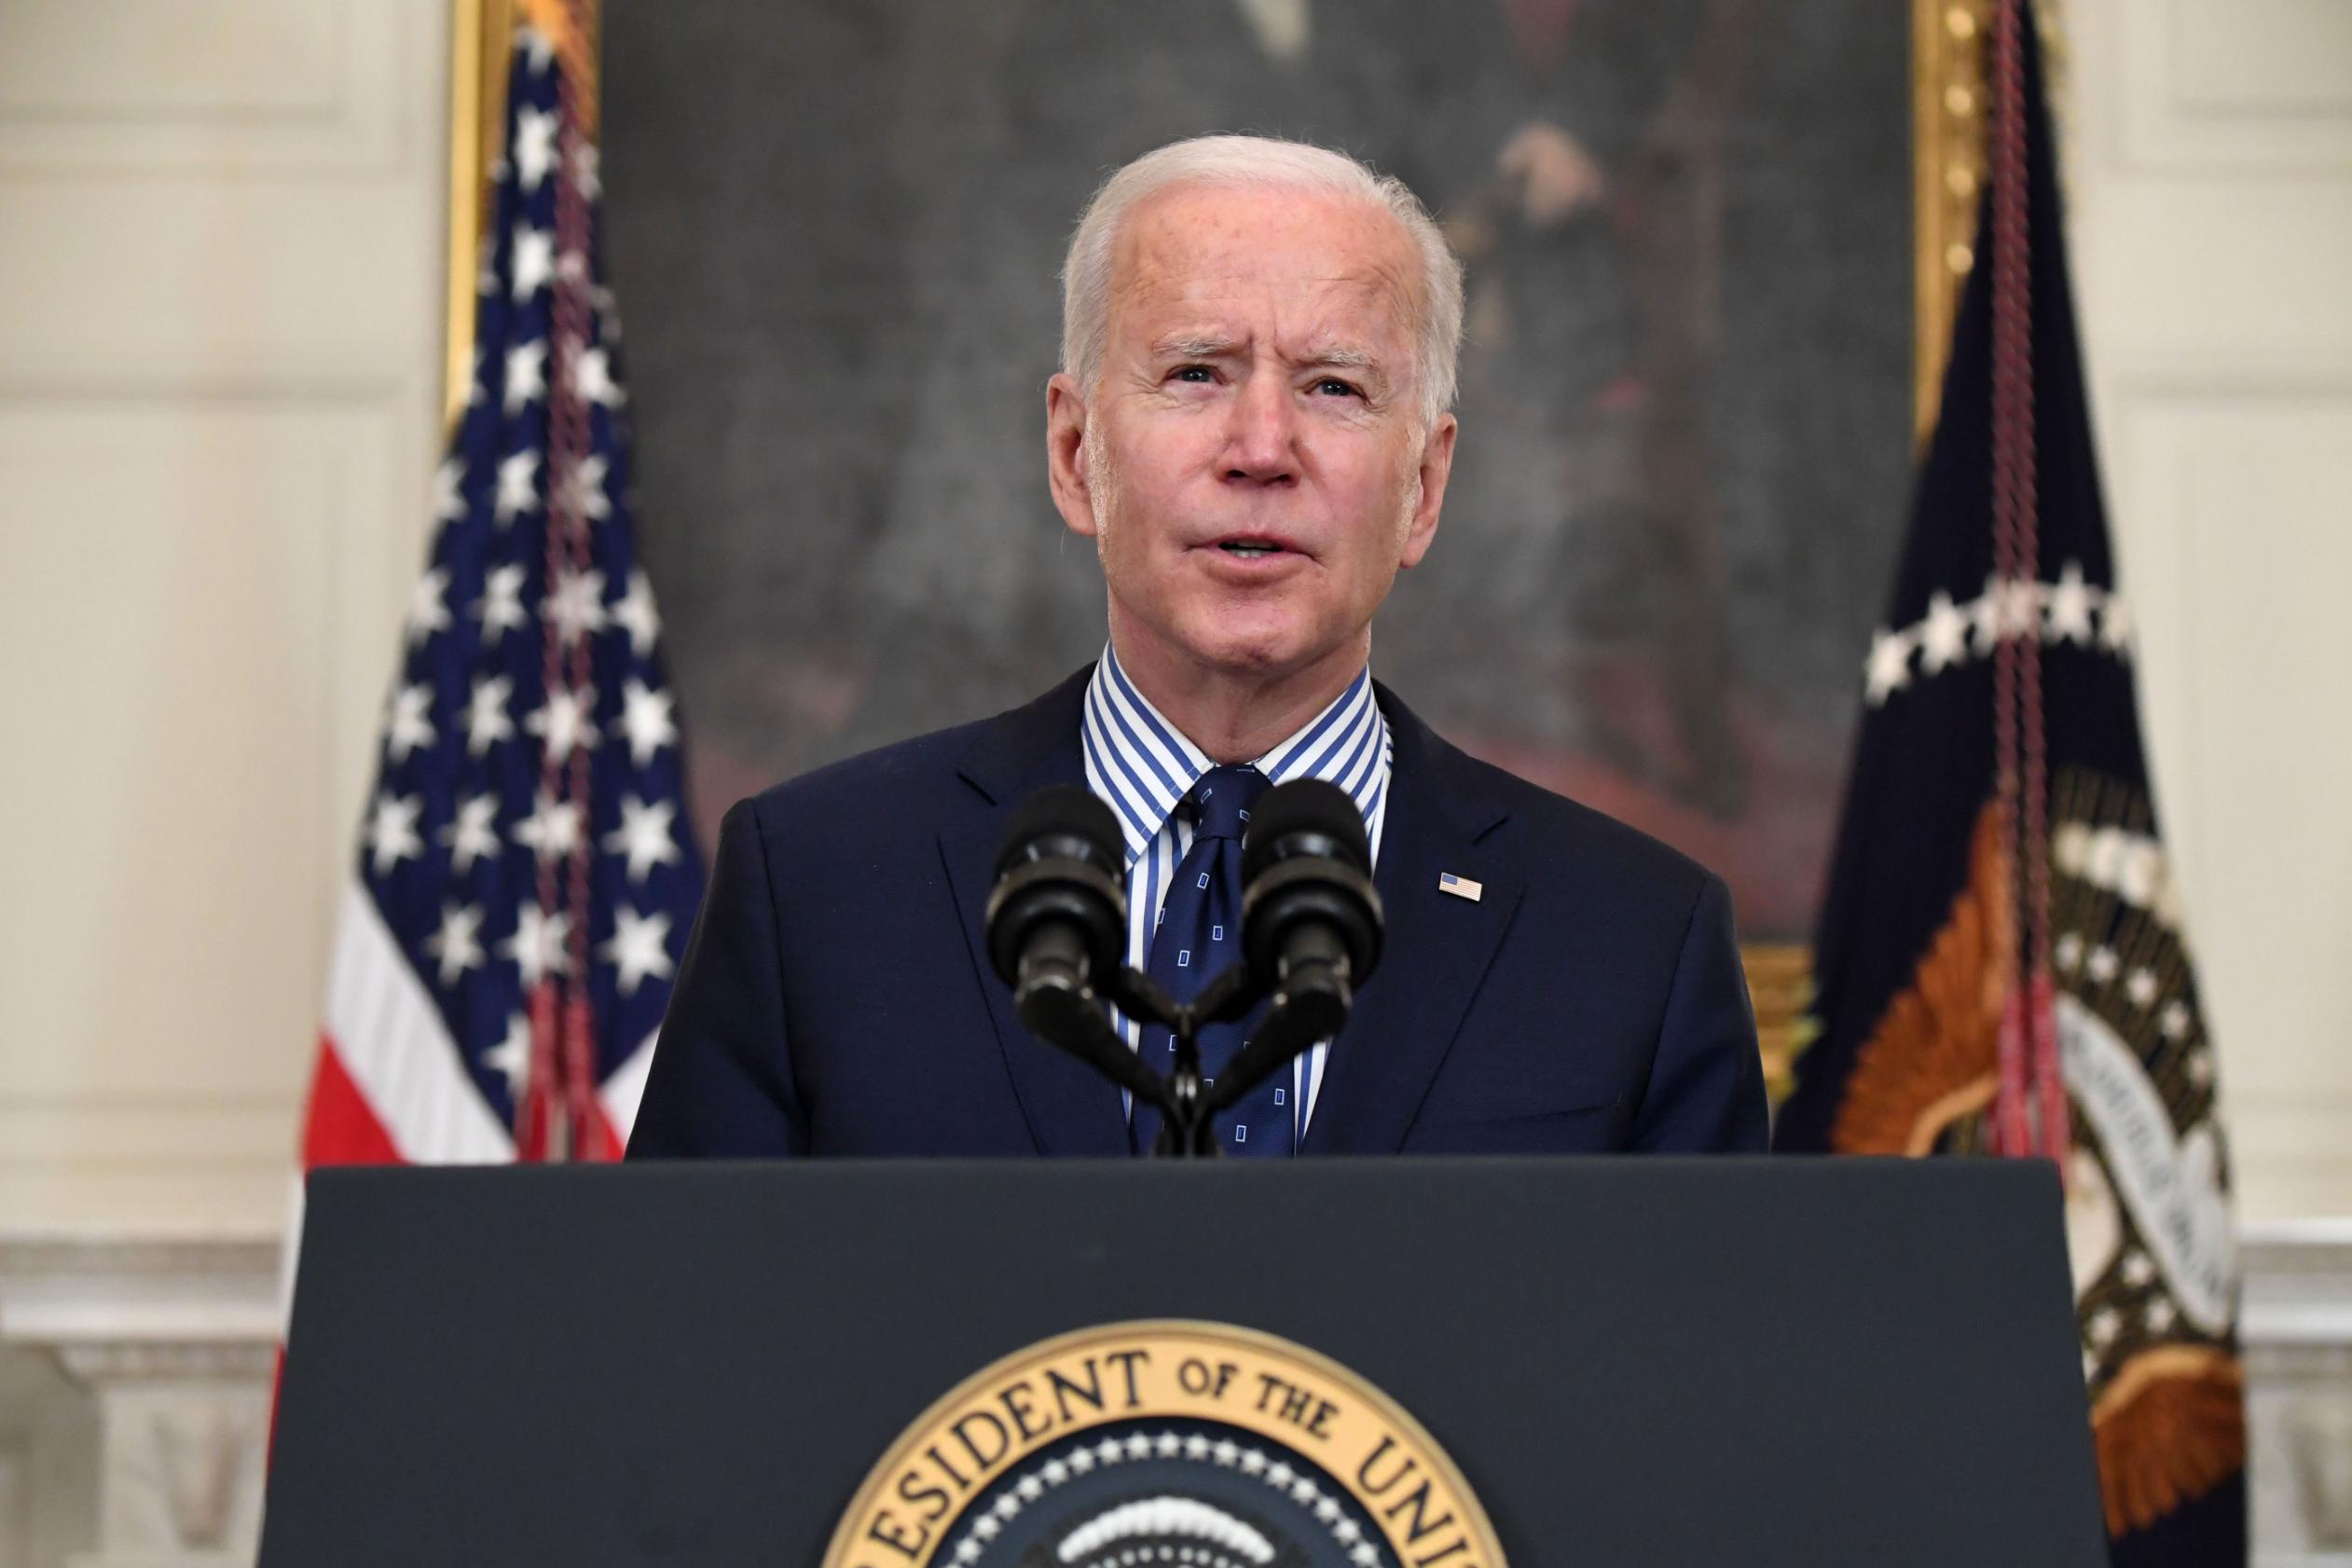 President Joe Biden gives an address at the White House on March 6, in Washington, DC.